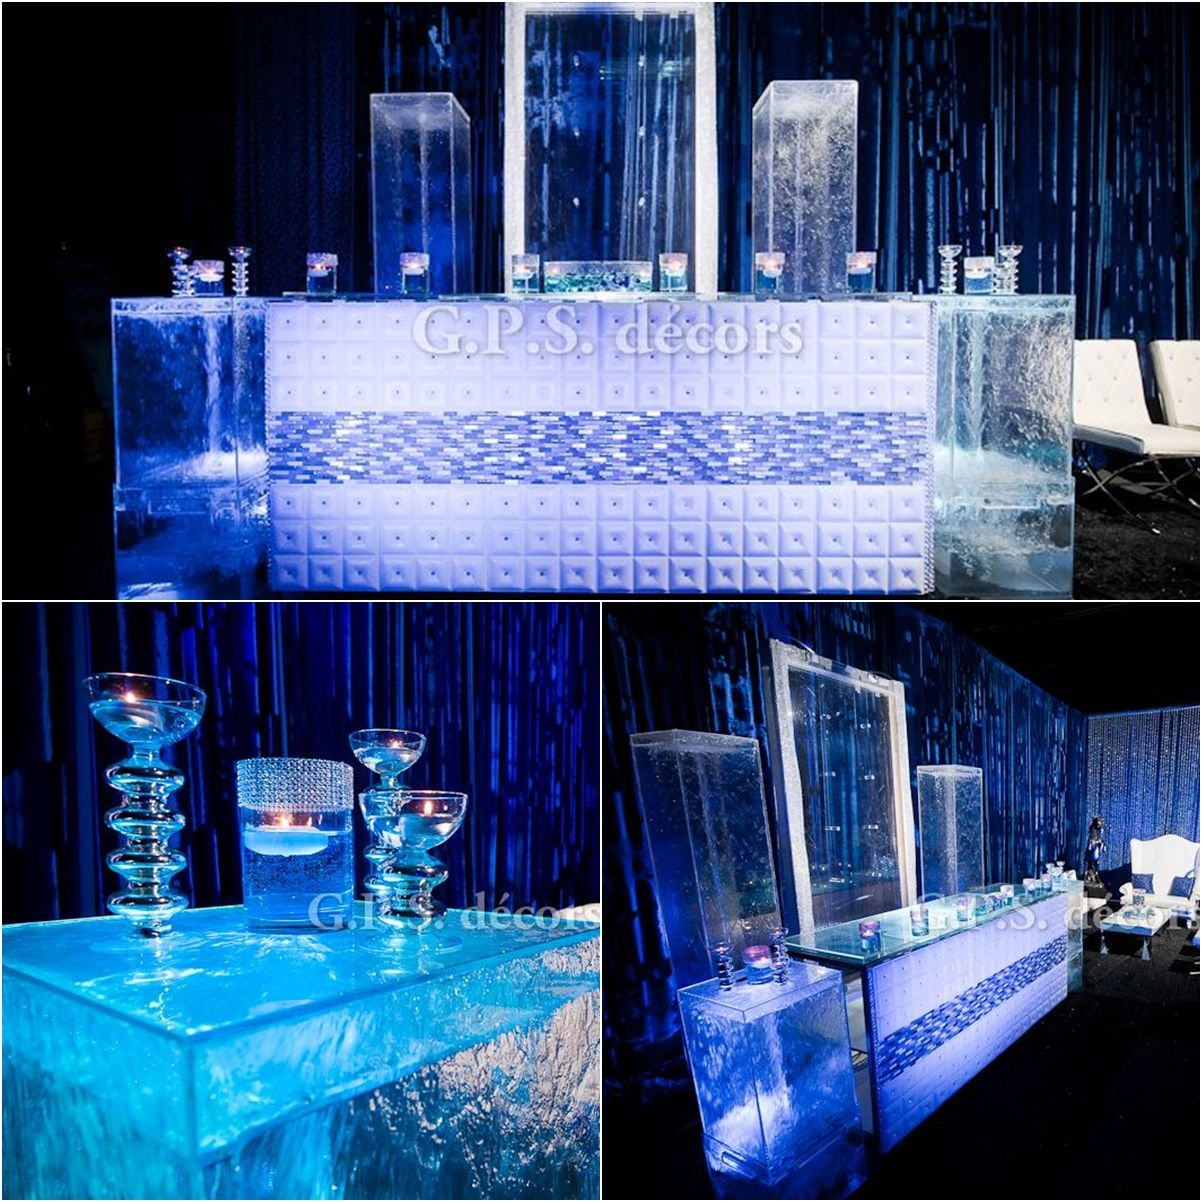 Afternoon Wedding Reception Ideas: Wedding Trends 2013 : Customized Water Bar. Let Your